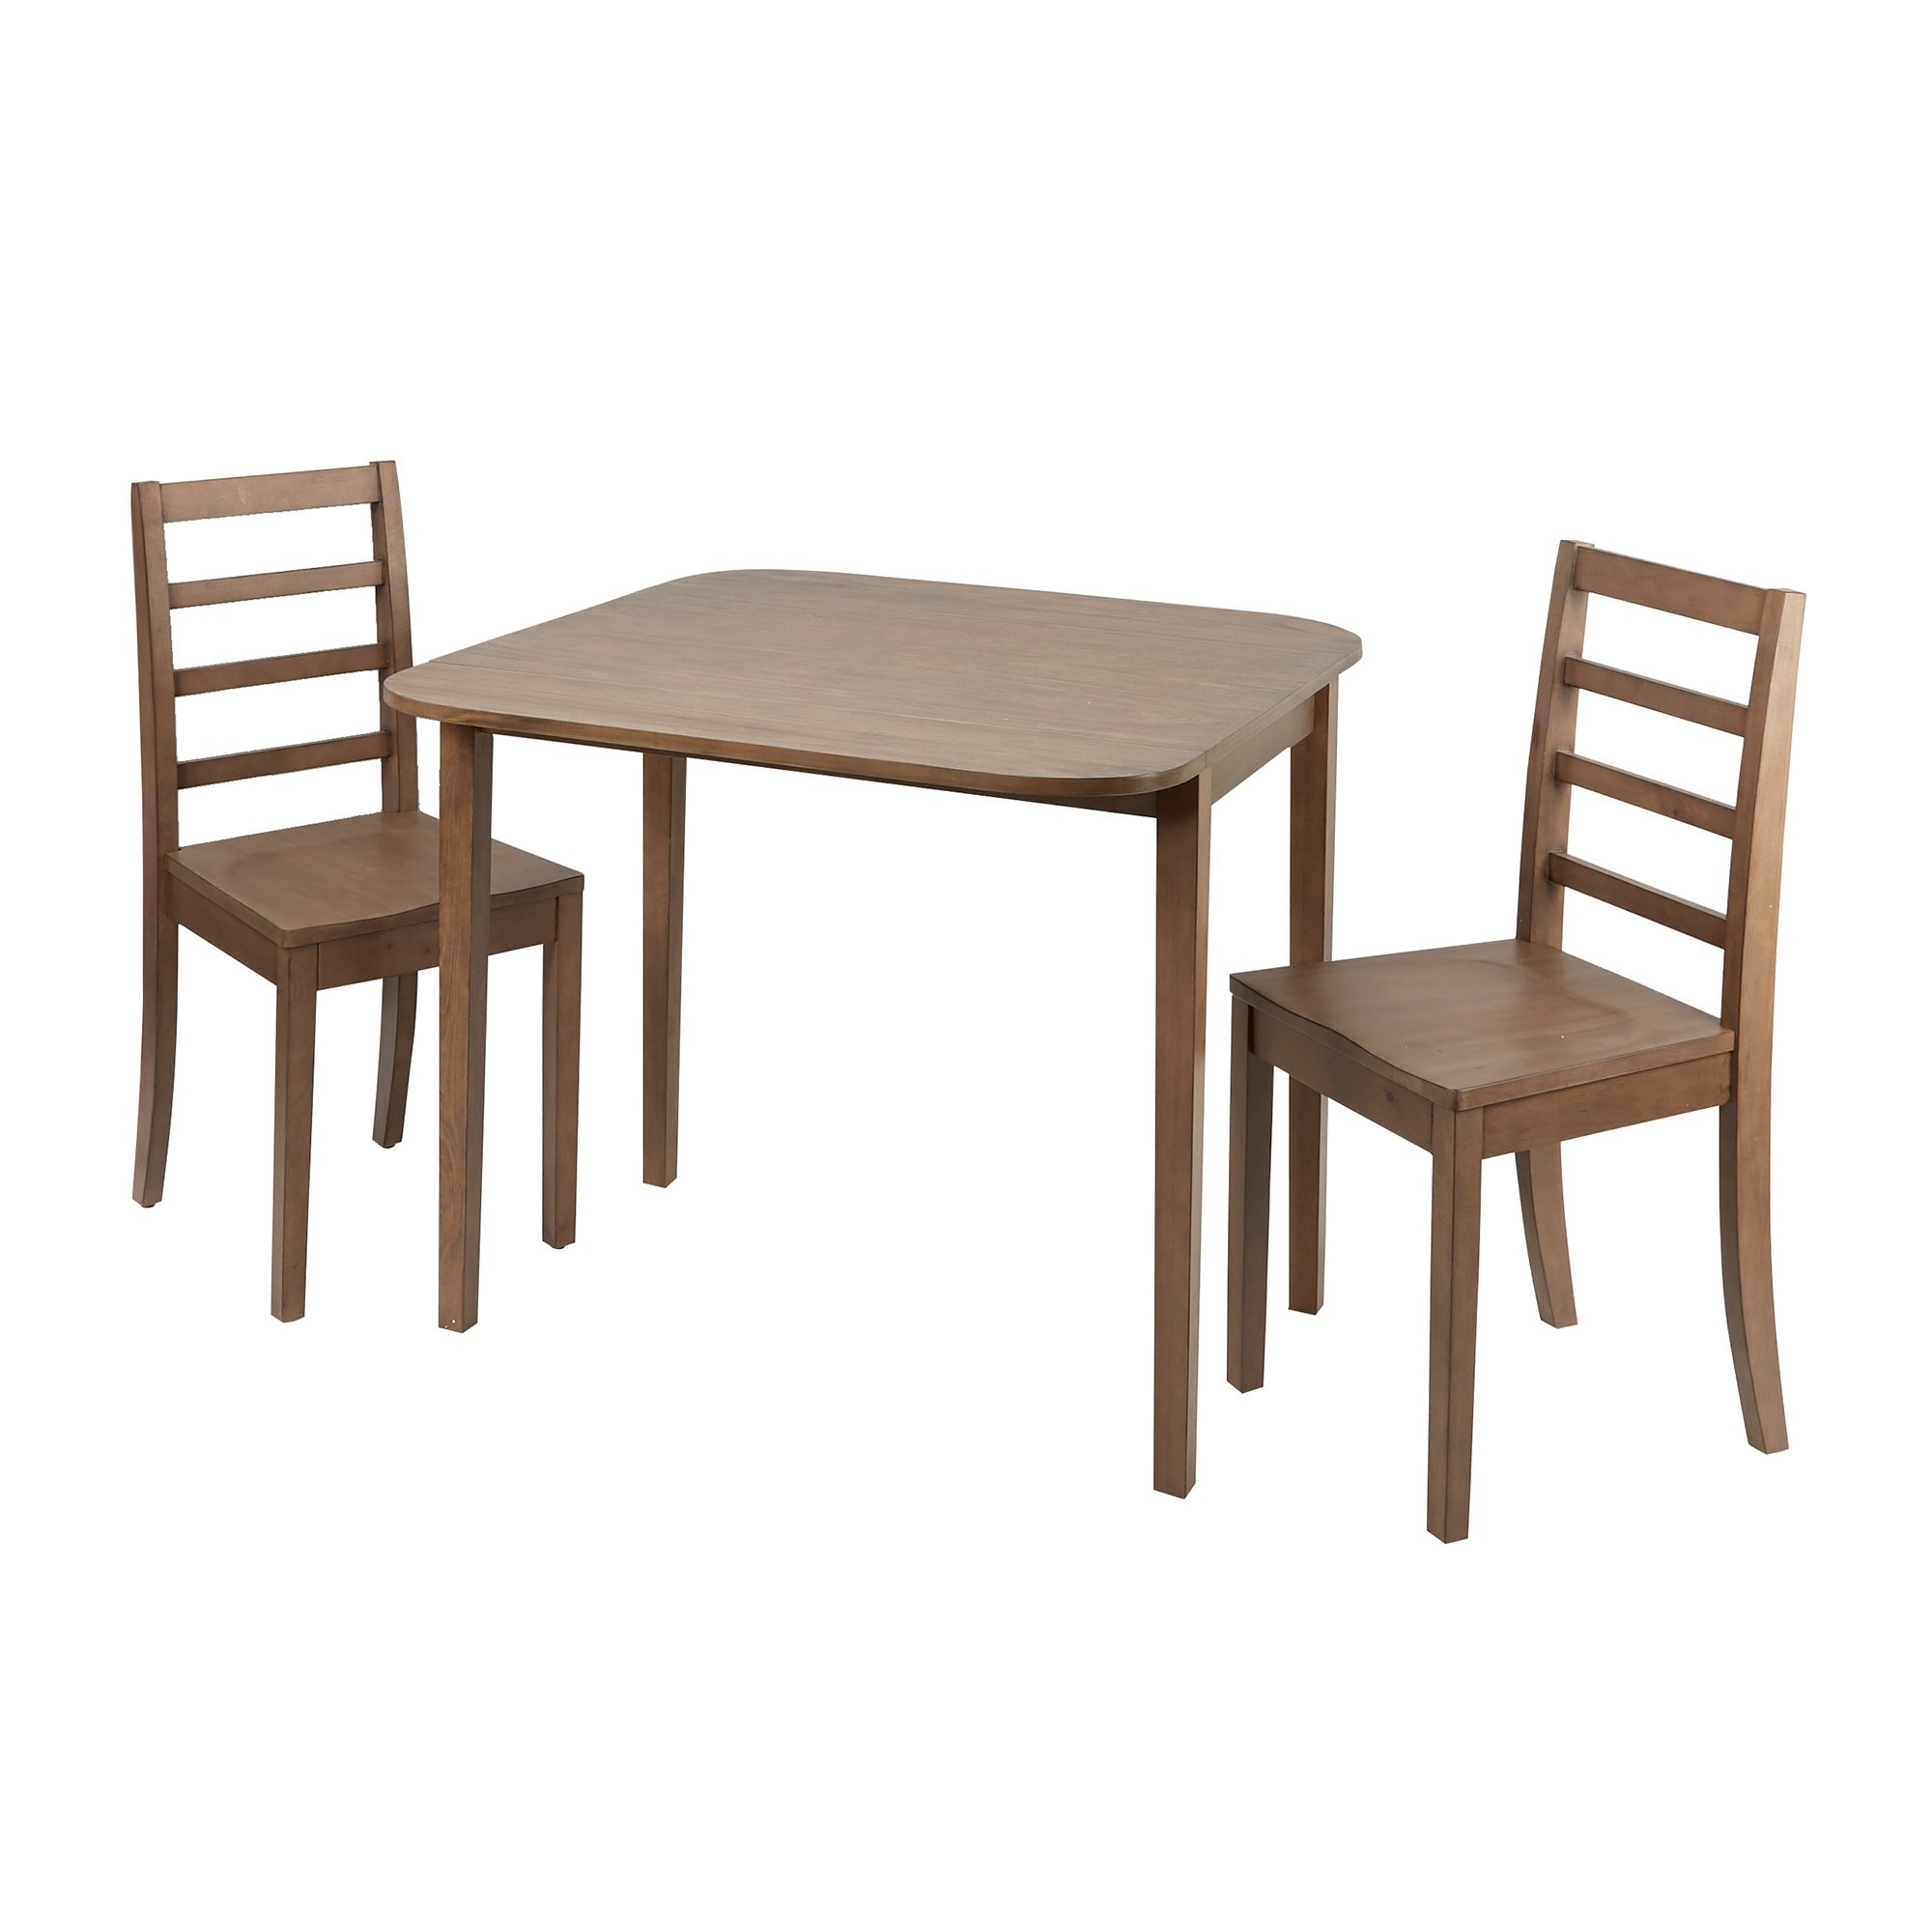 2020 Mason 3 Piece Drop Leaf Dining Set With Ladderback Chairs In Transitional 3 Piece Drop Leaf Casual Dining Tables Set (View 1 of 25)